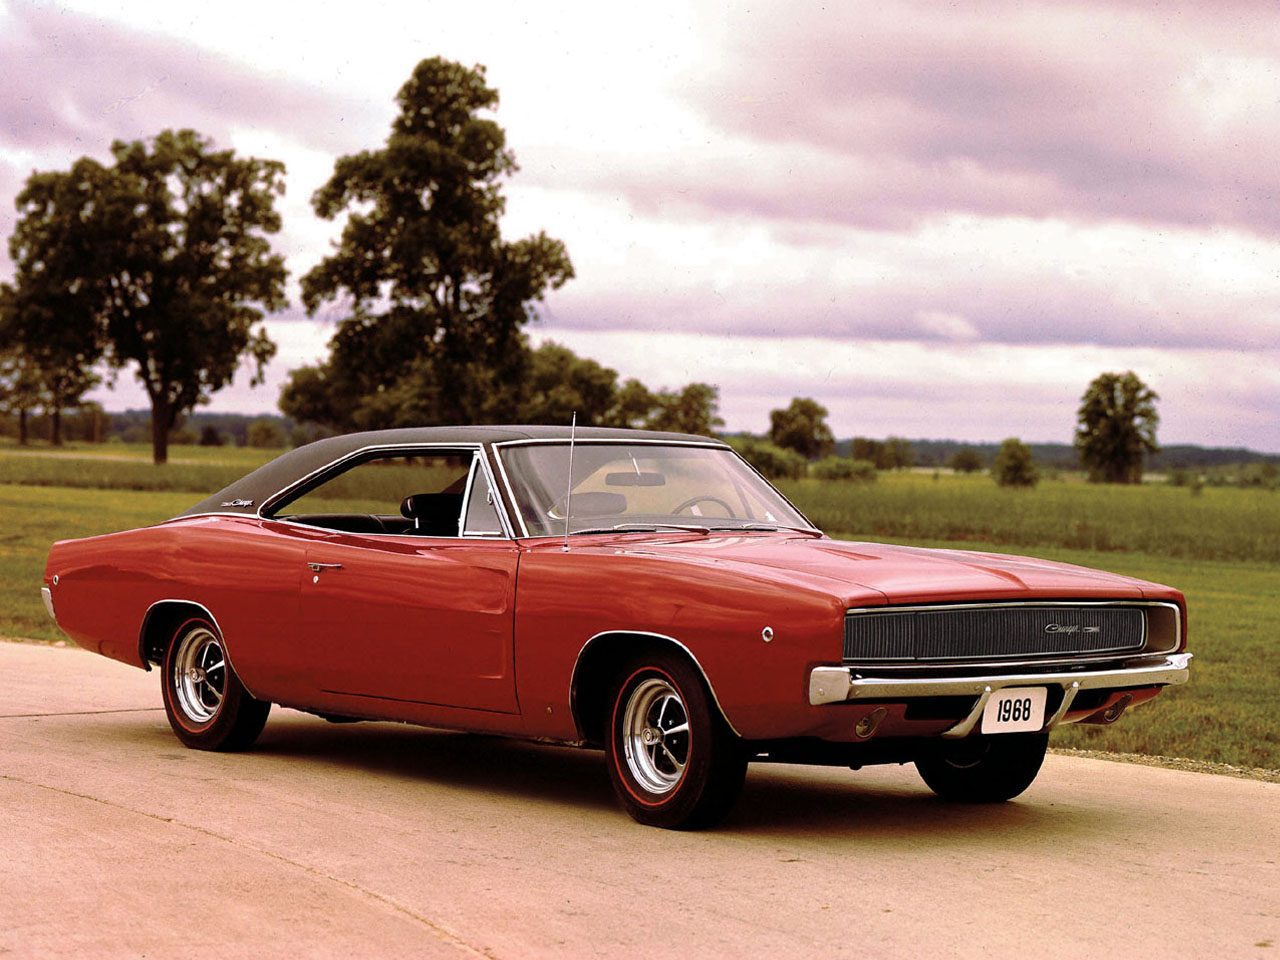 1968 Dodge Charger, 1972 Dodge Charger picture